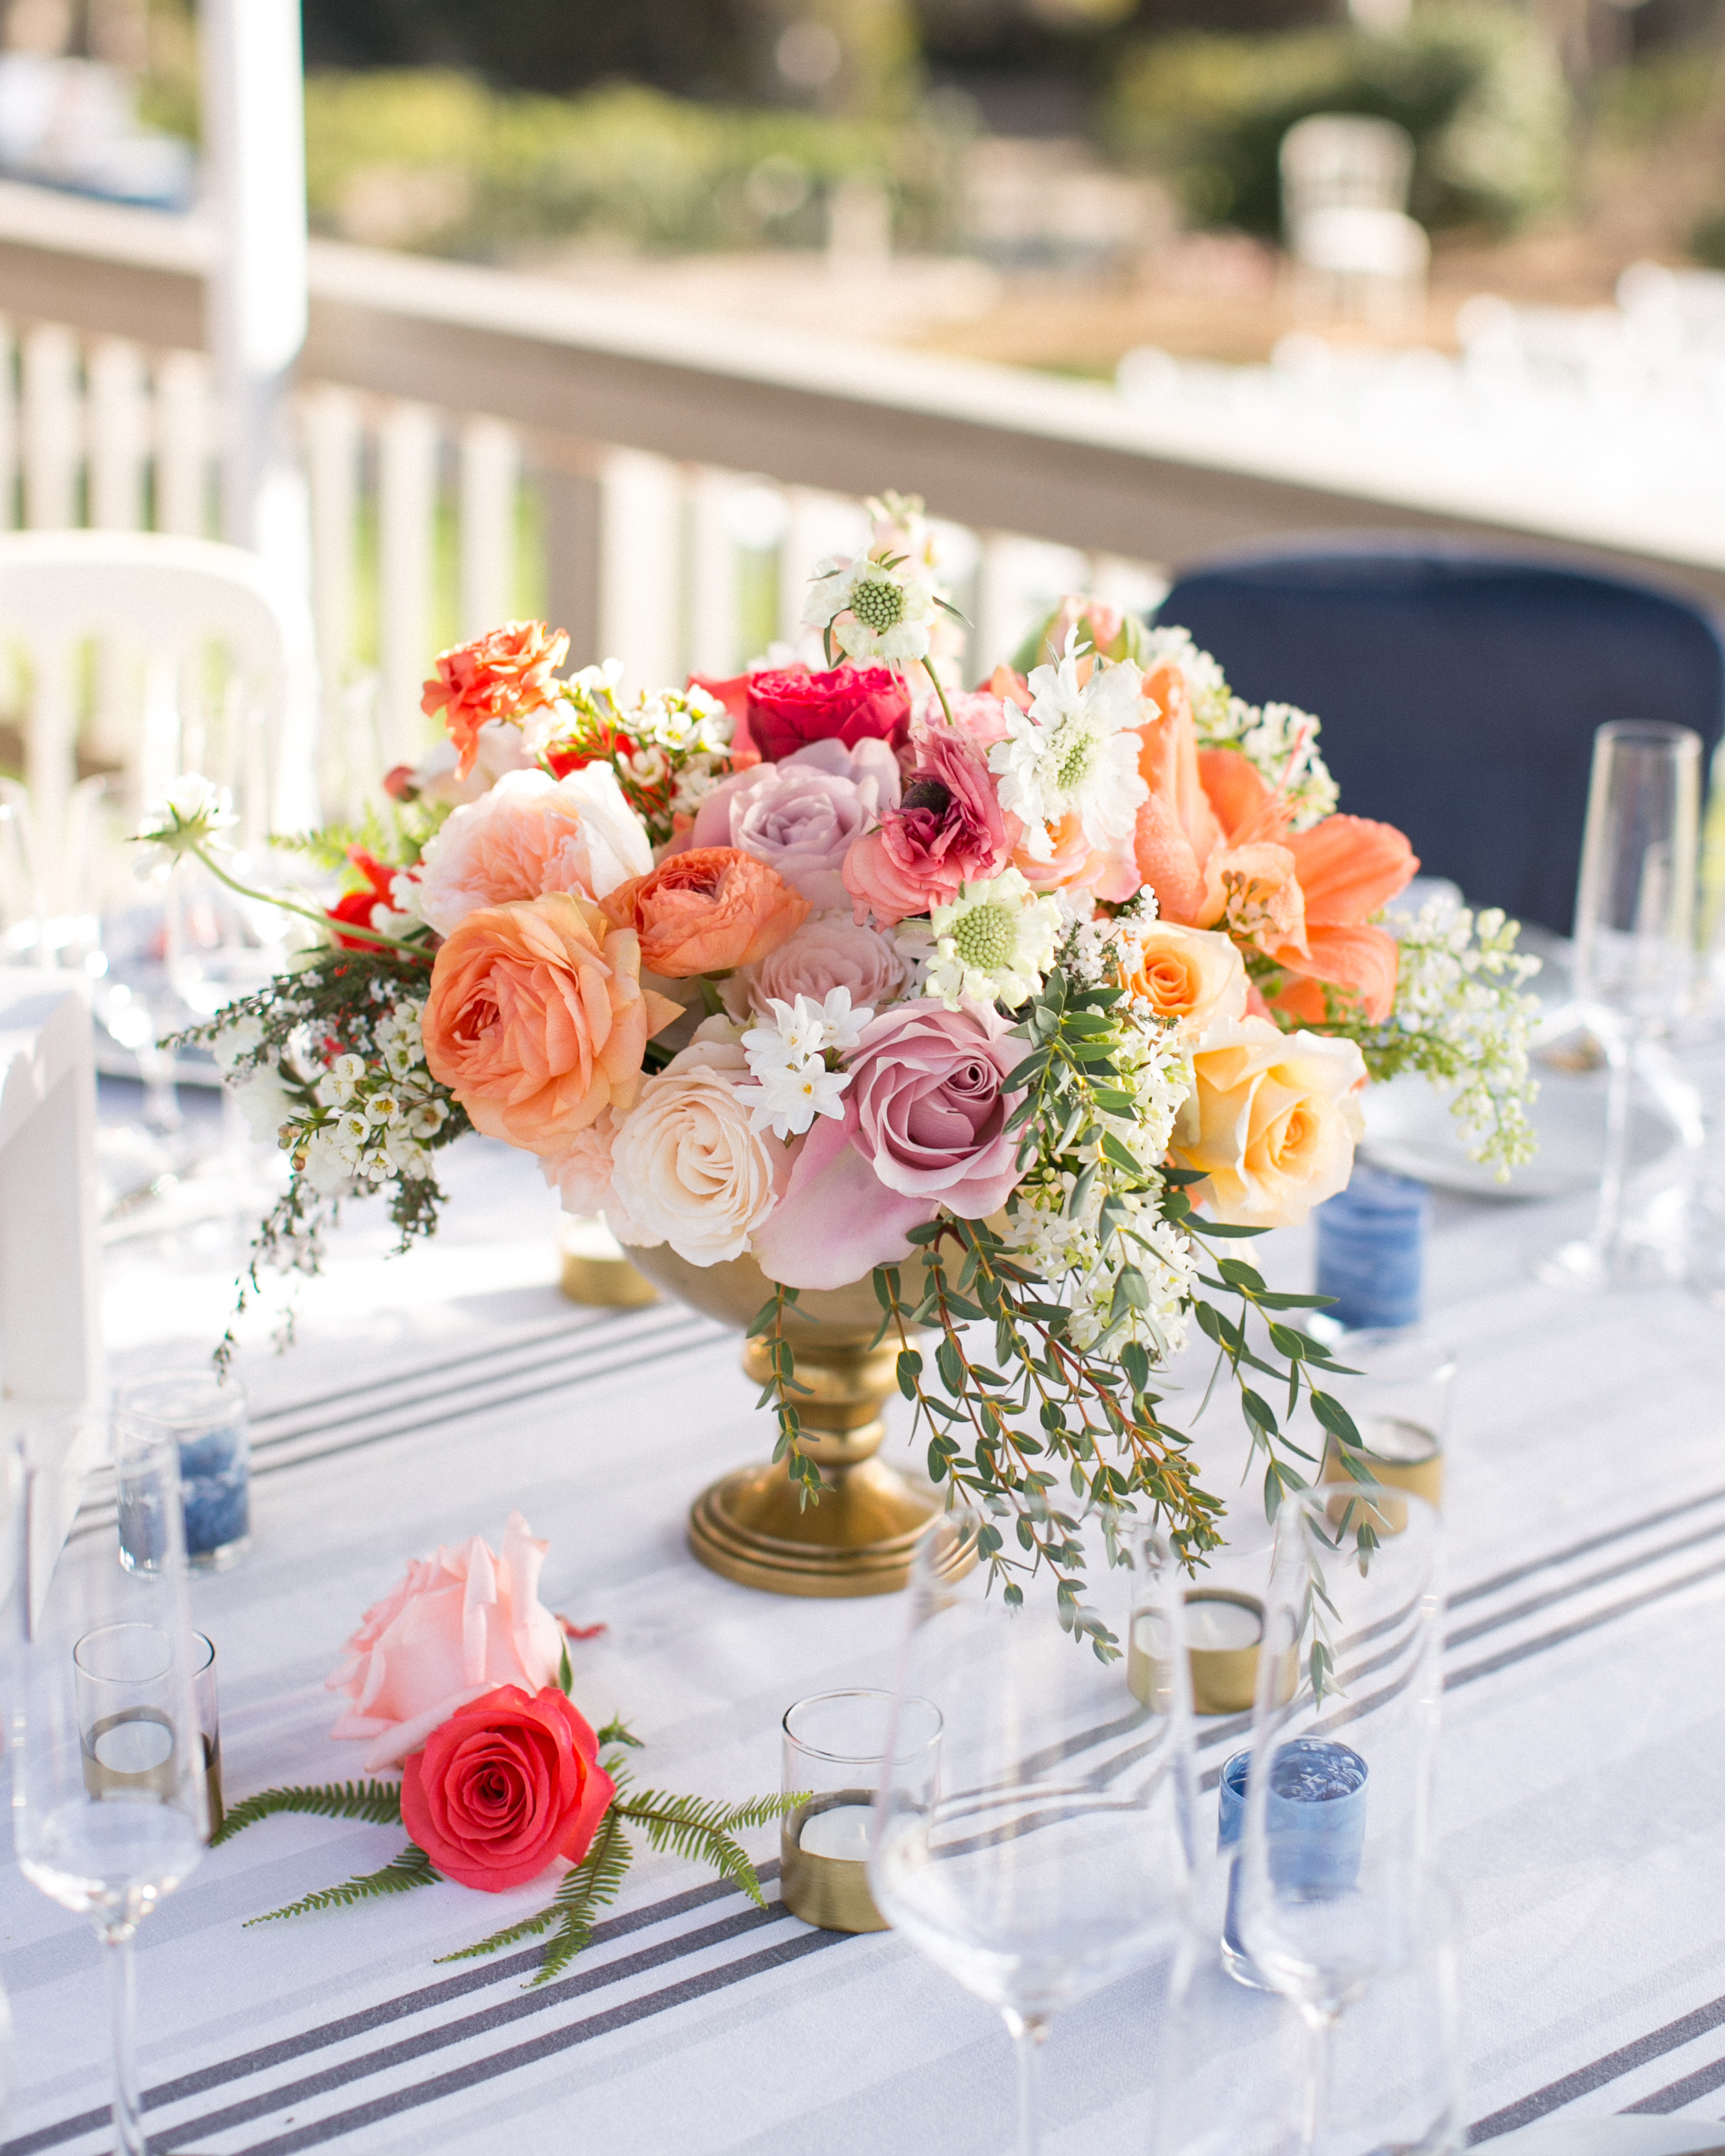 50 Wedding Centerpiece Ideas We Love